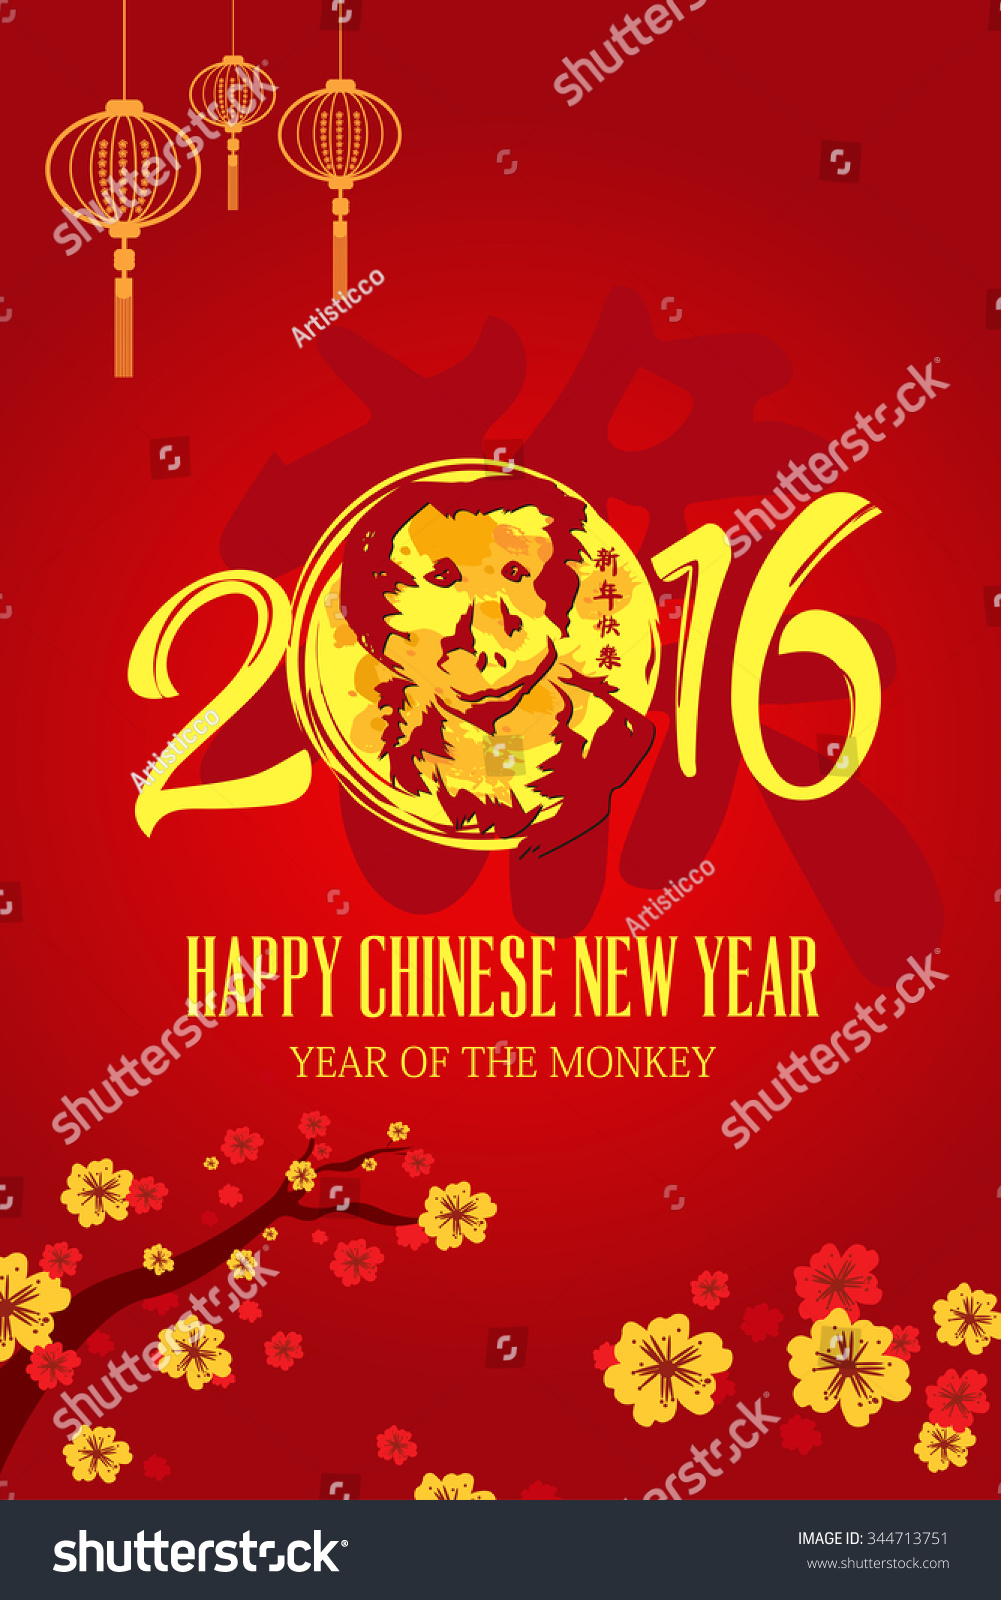 Chinese God Of Prosperity Greeting Card For Lunar New Year Holiday